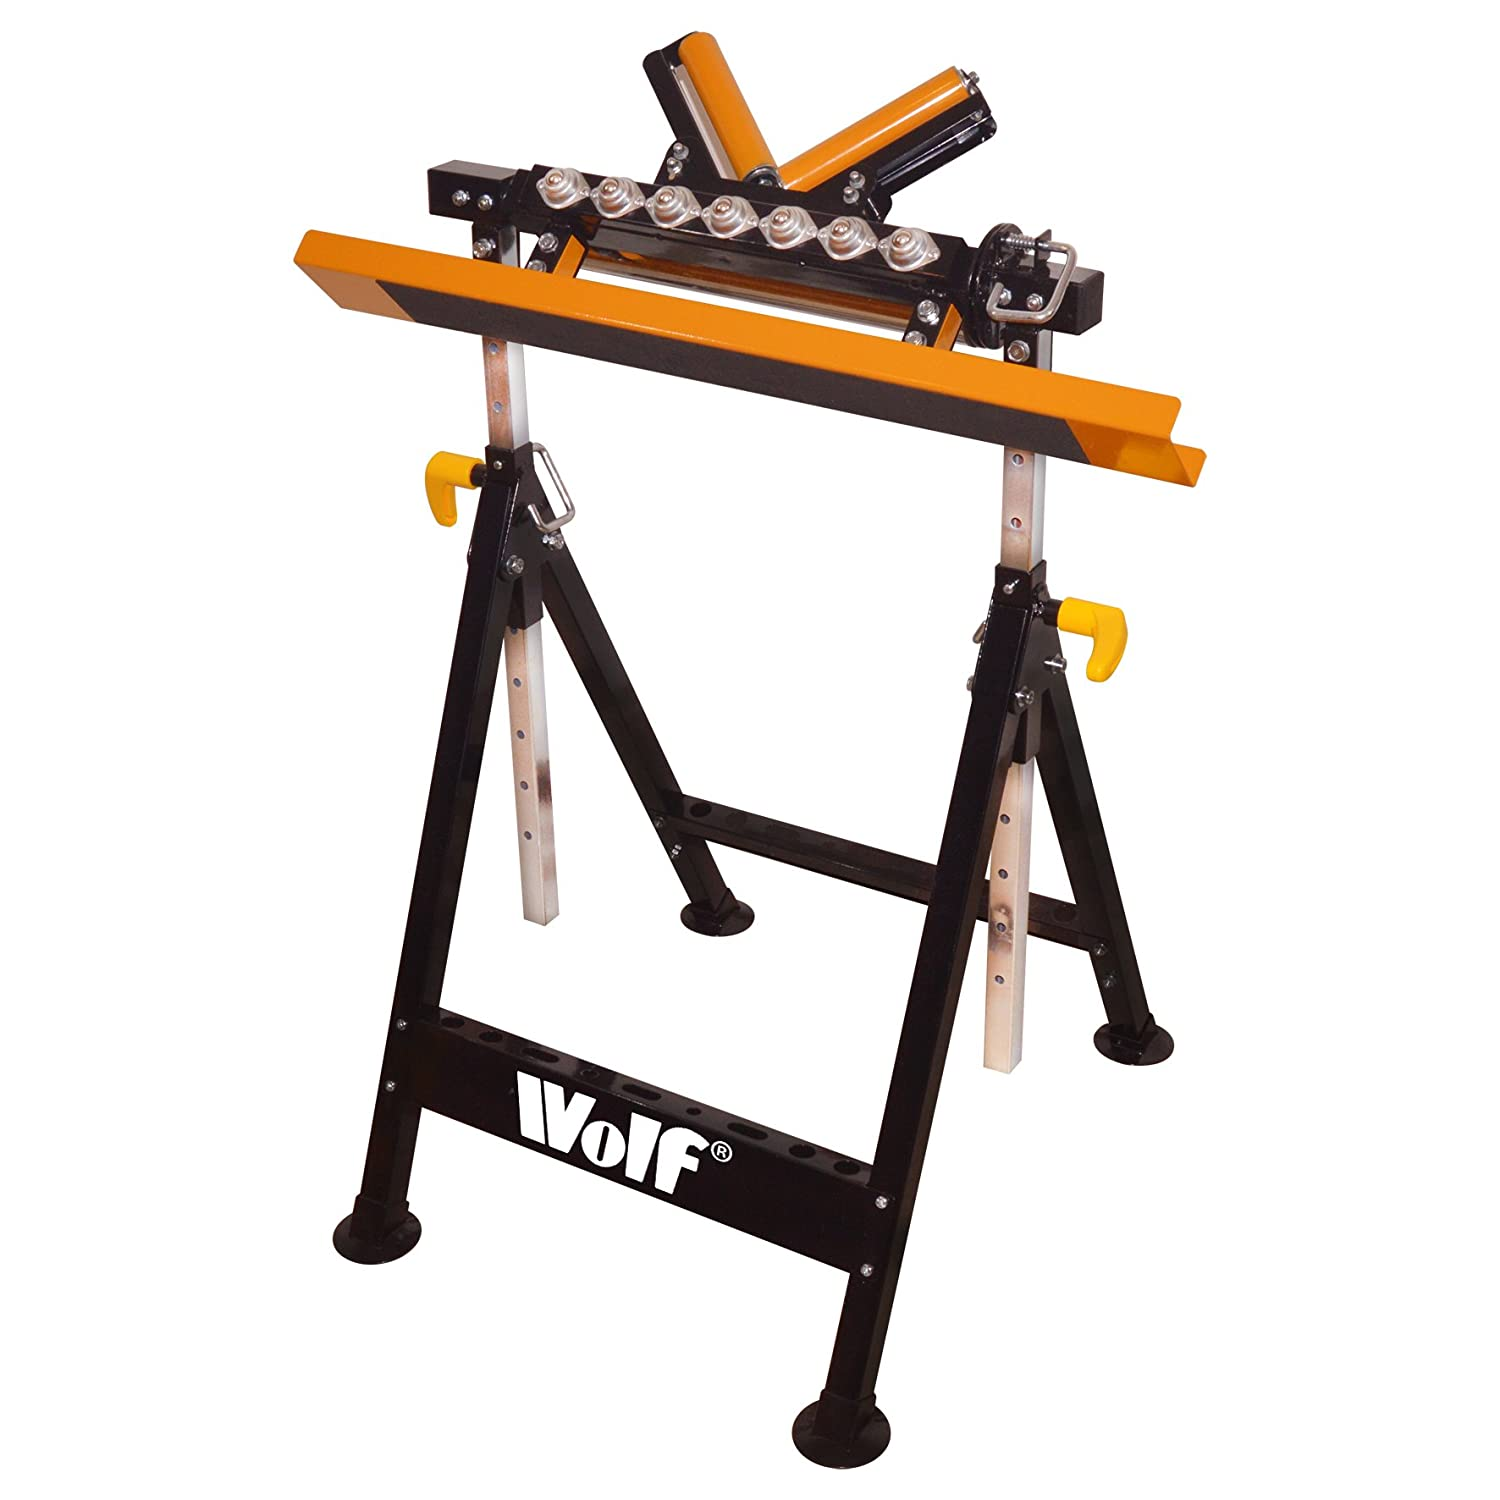 Wolf Combi Adjustable Workbench Workmate Trestle Table 4 Way Stand - Horizontal, V', Ball Roller, Trestle - 2 Year Warranty V'